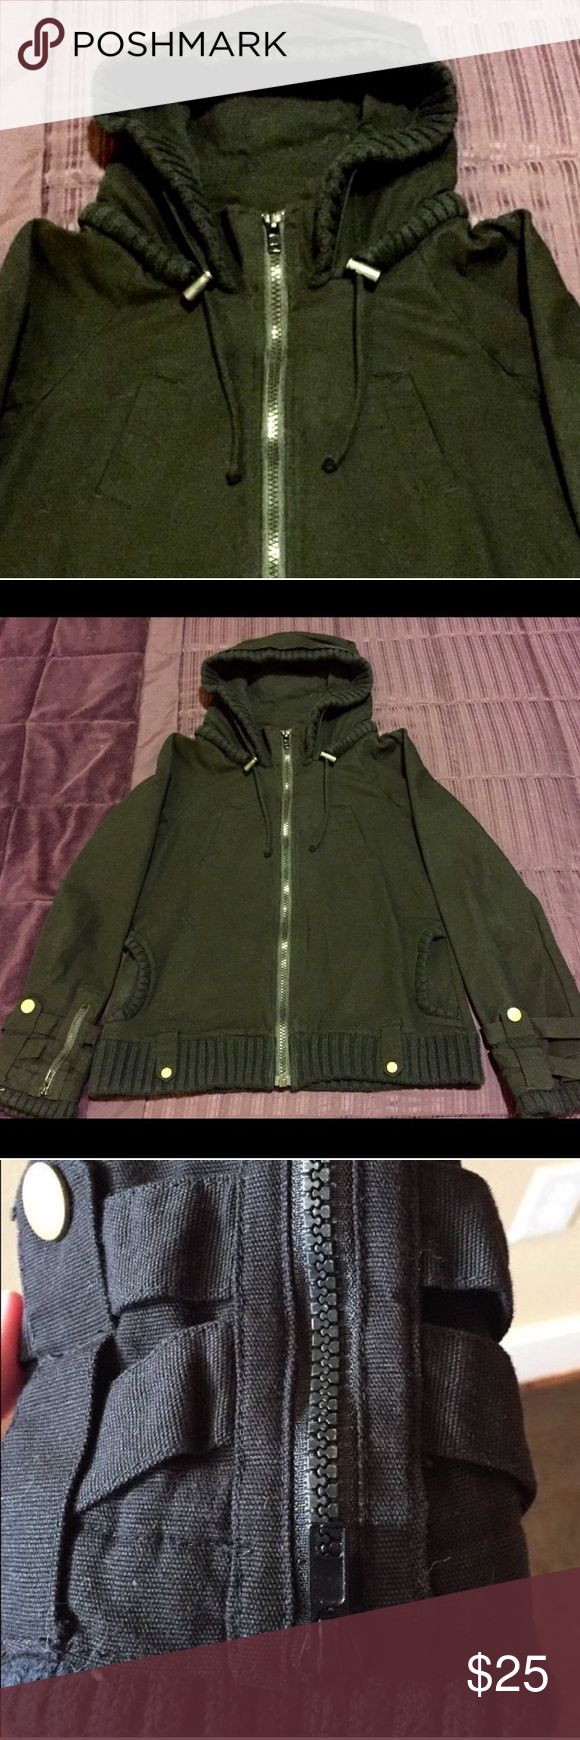 BB Dakota Jacket Super cute Moto Jacket! Durable but light enough for all seasons. Features cowl neck, large hood and double breast pockets. This coat is in good condition, normal wear. Size large but fits more like a medium. Jack by BB Dakota Jackets & Coats Utility Jackets